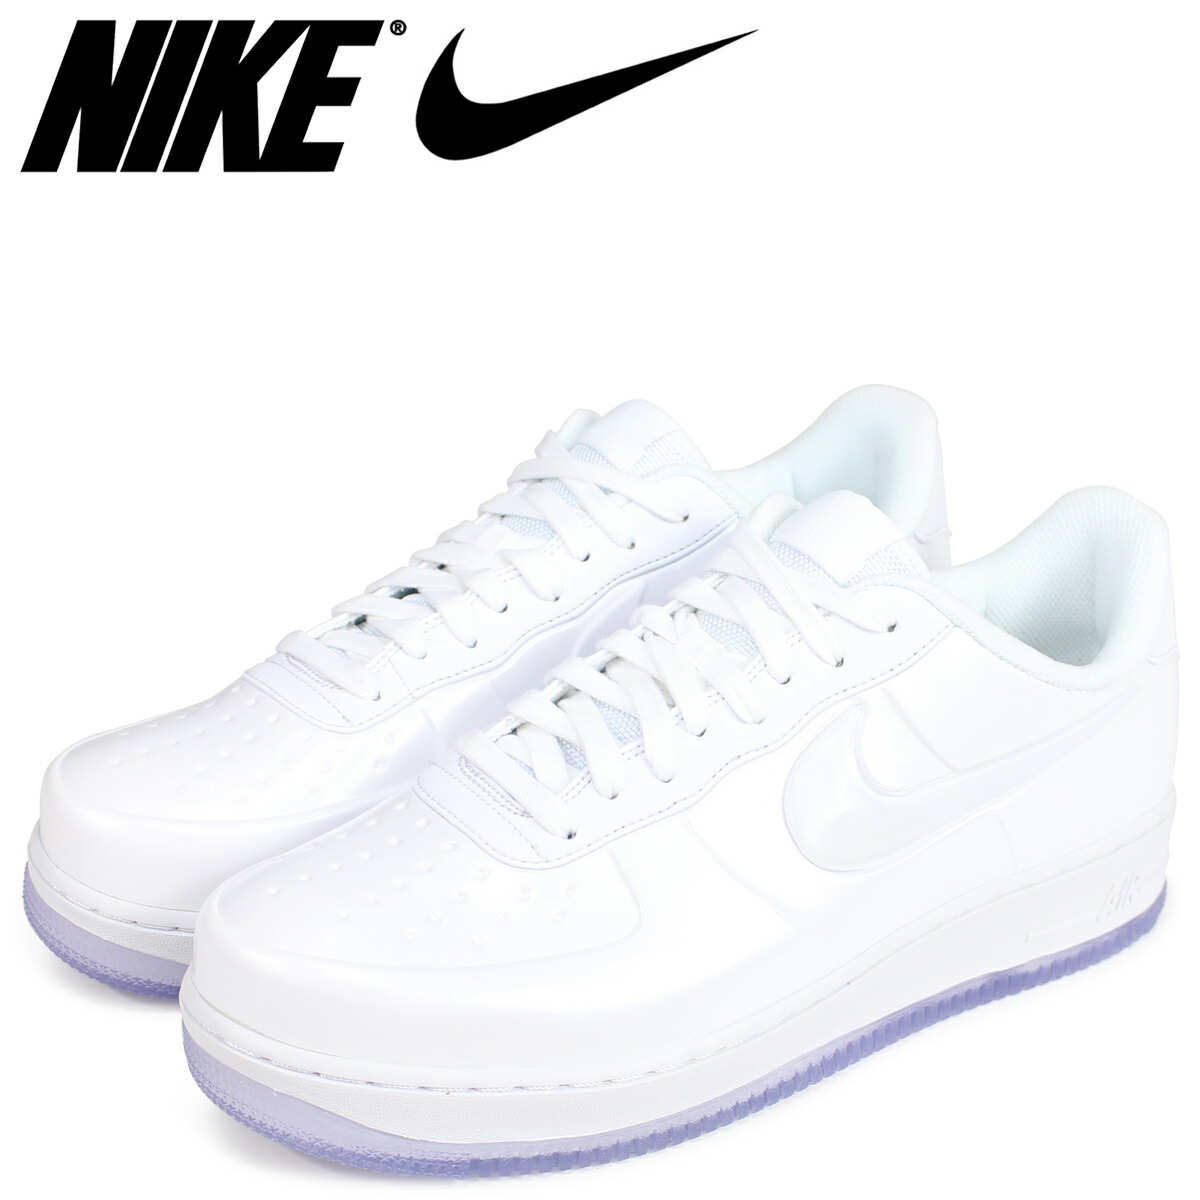 f6183a622834 NIKE Nike air force 1 sneakers men AIR FORCE 1 FOAMPOSITE PRO CUP AF1 AJ3664 -100 white  load planned Shinnyu load in reservation product 7 19 containing